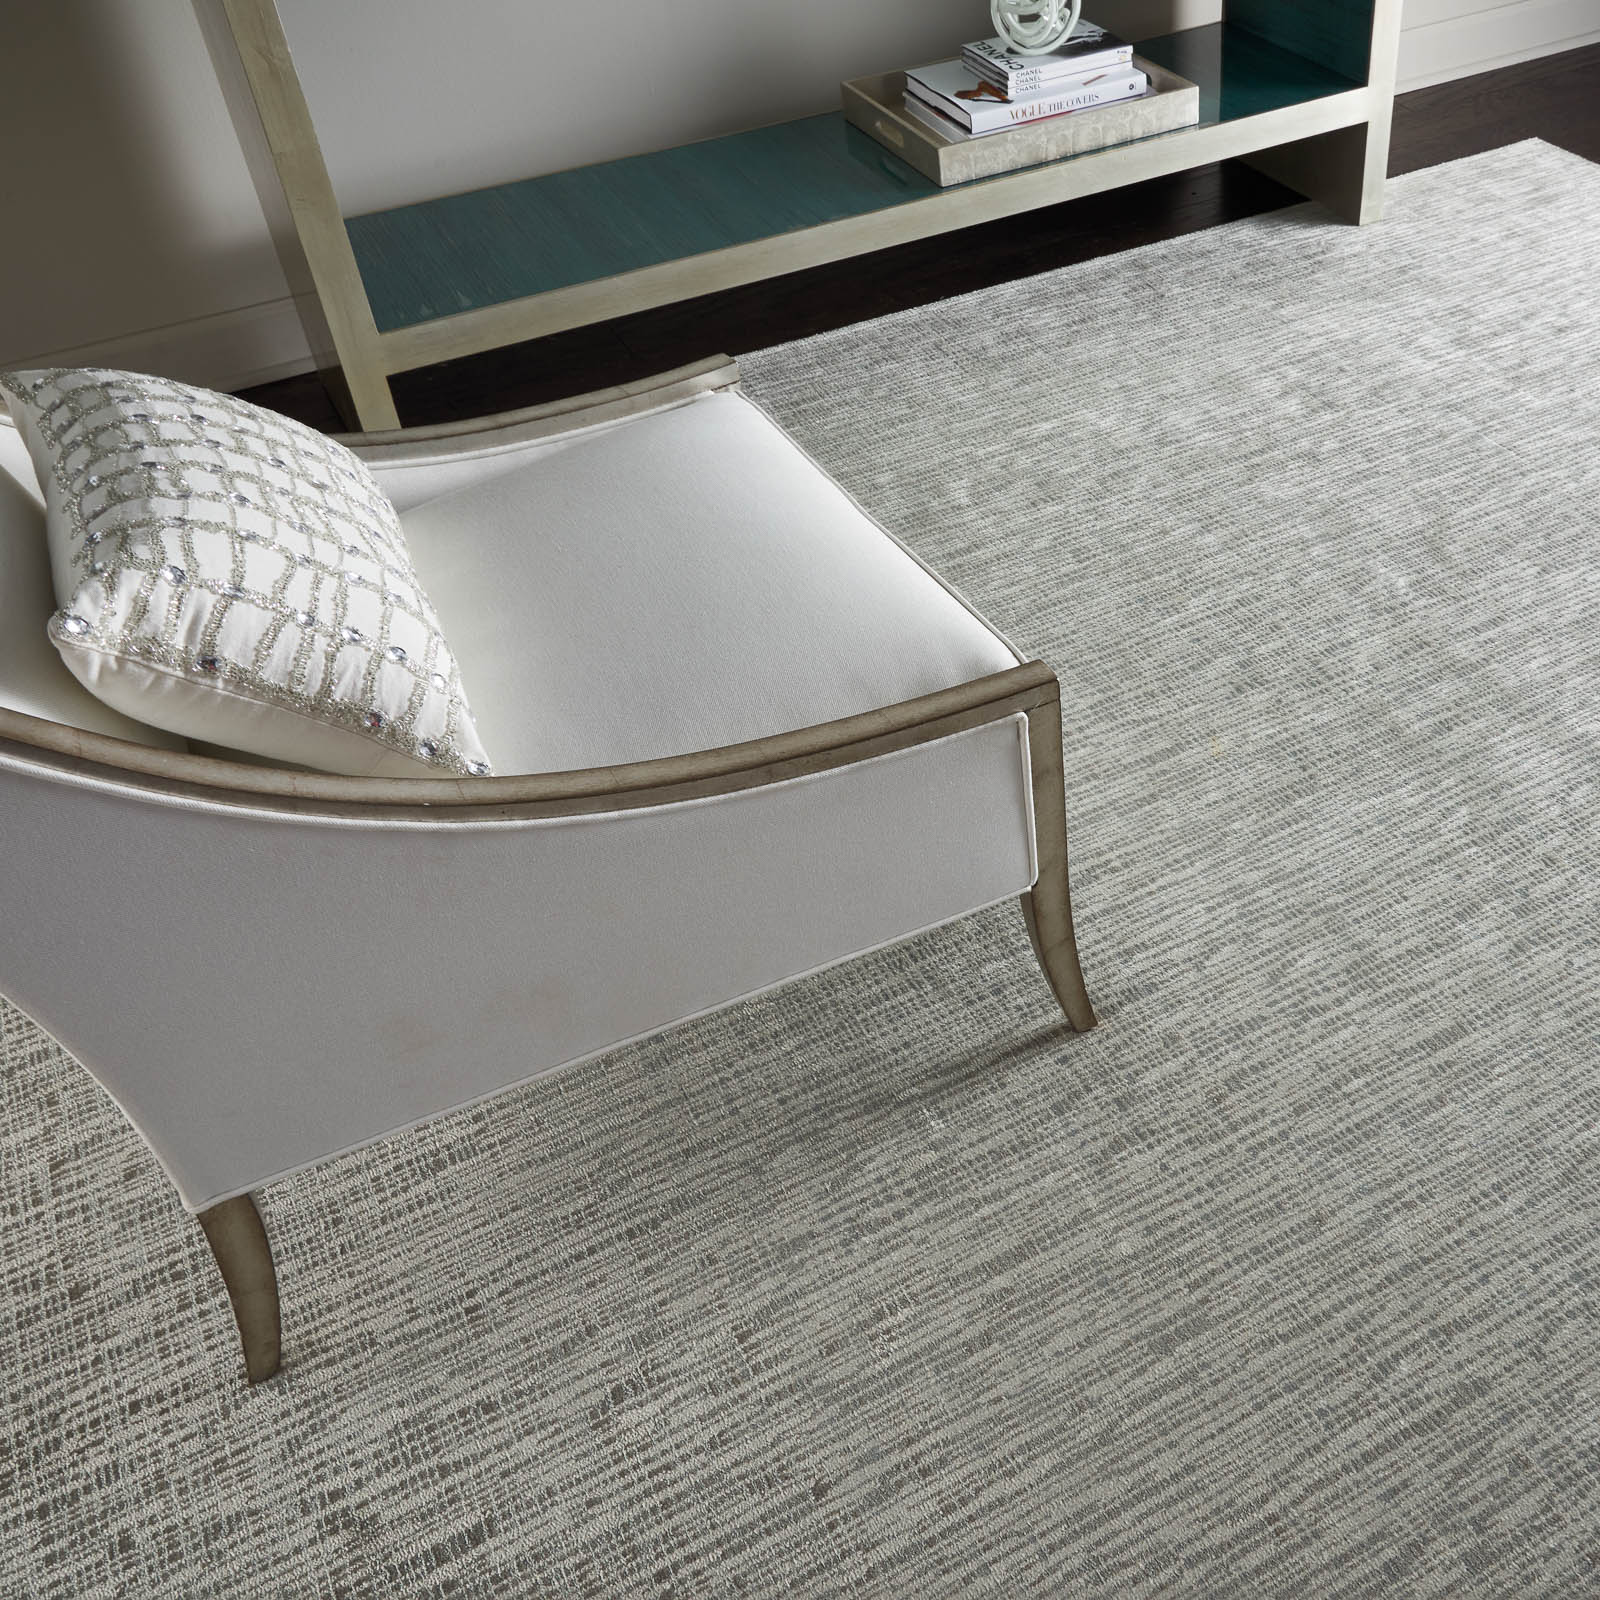 Starlight Rugs STA02 in Pewter